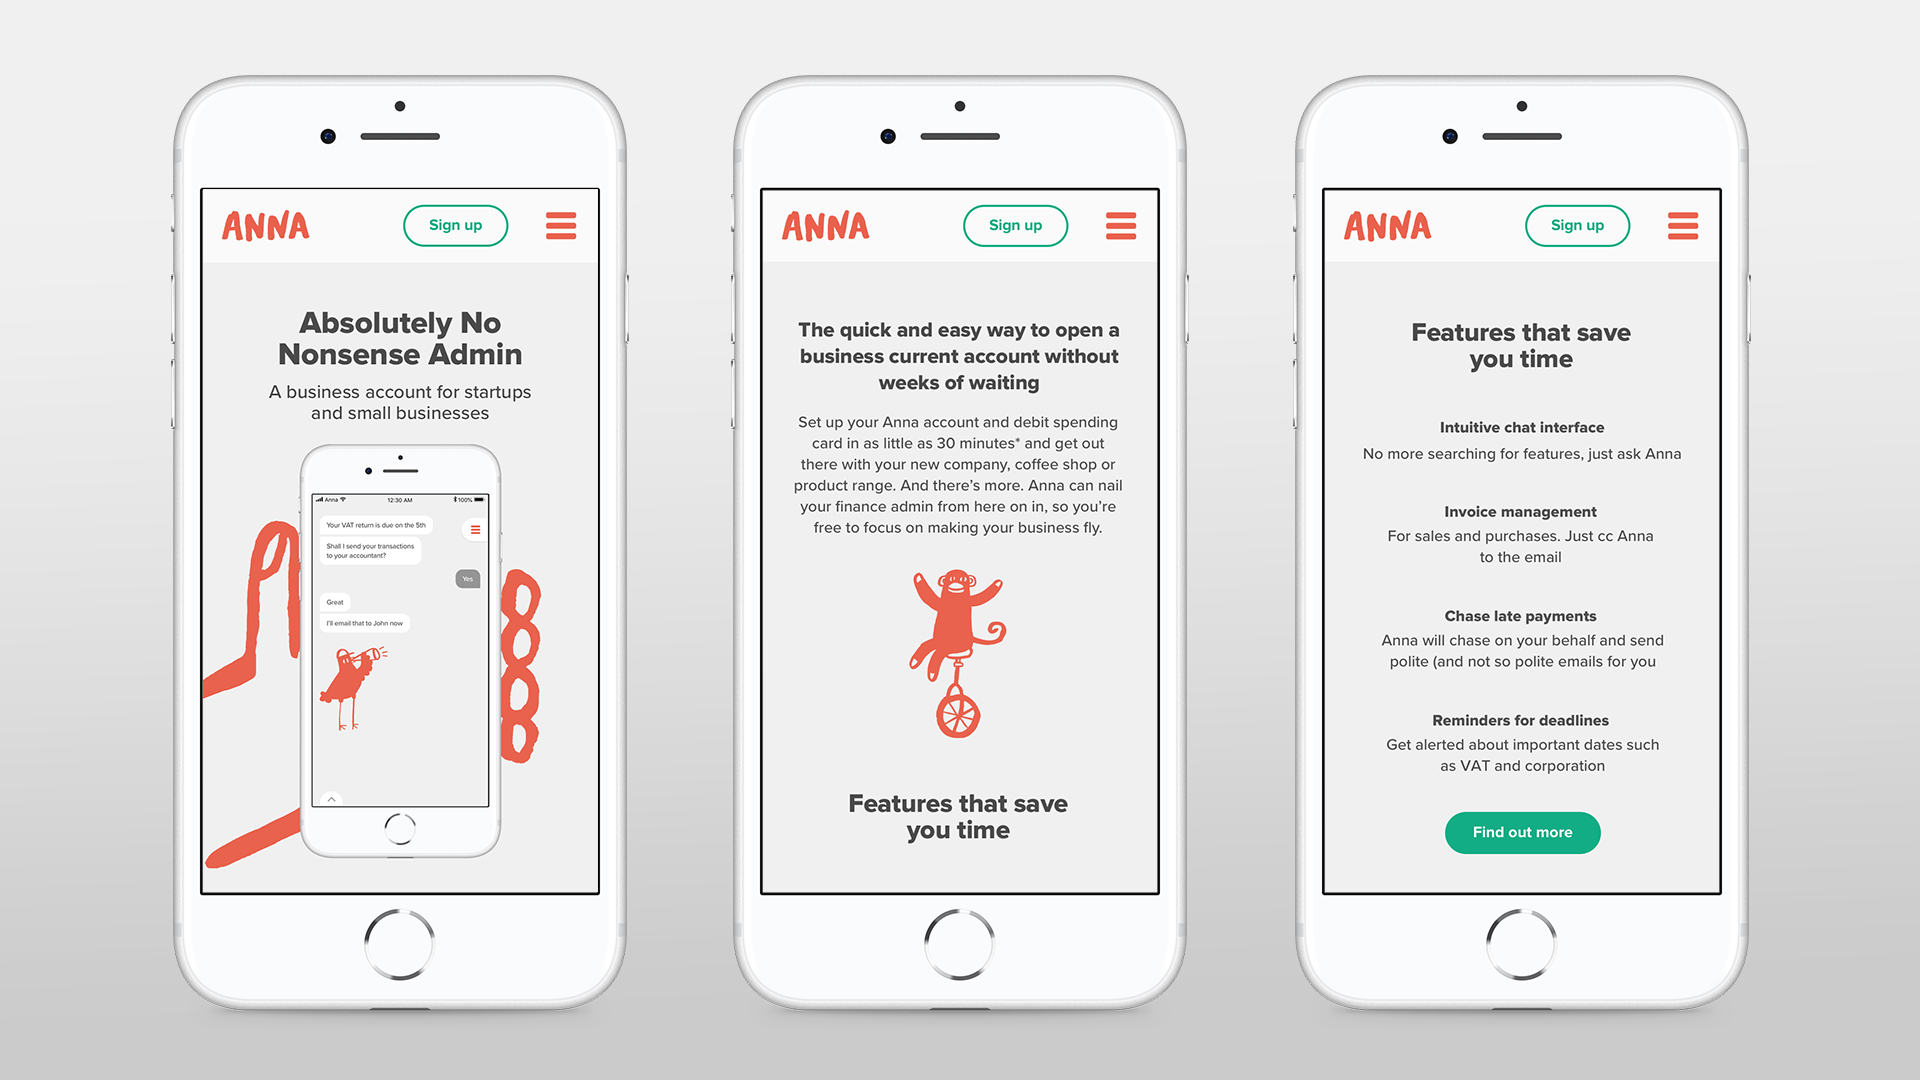 Mobile devices displaying the ANNA app